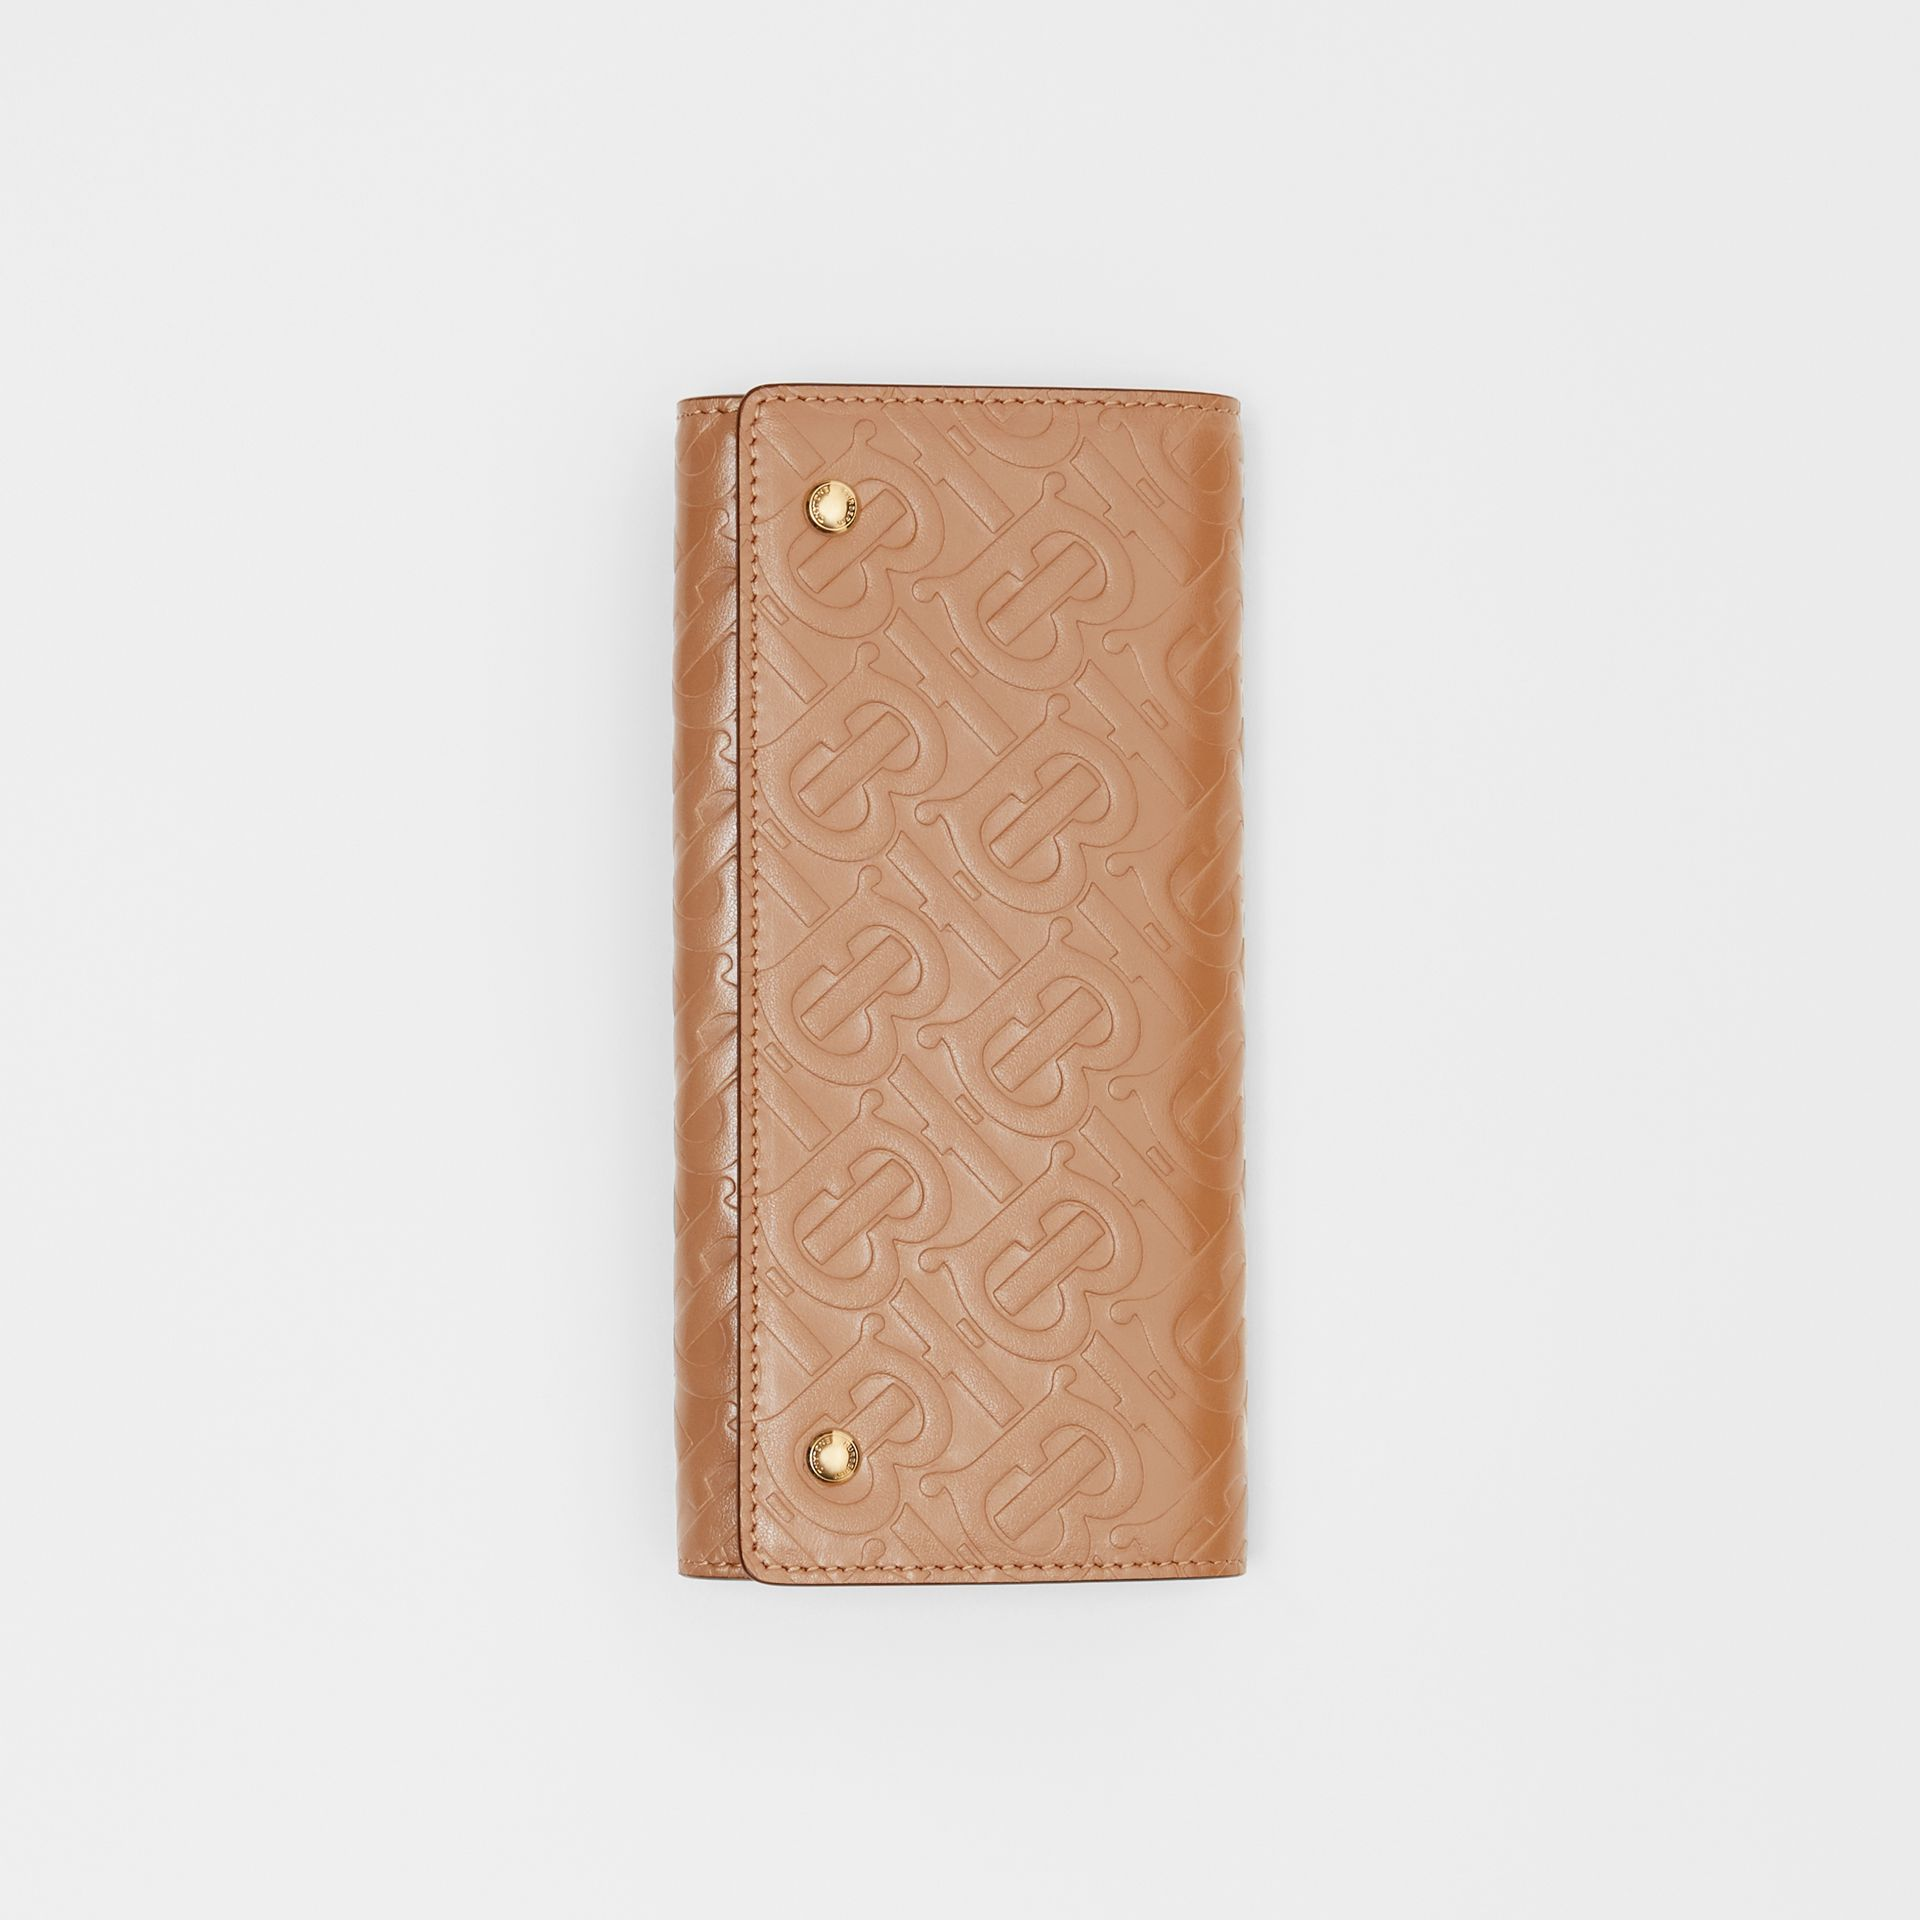 Portefeuille continental en cuir Monogram (Camel Clair) - Femme | Burberry - photo de la galerie 3